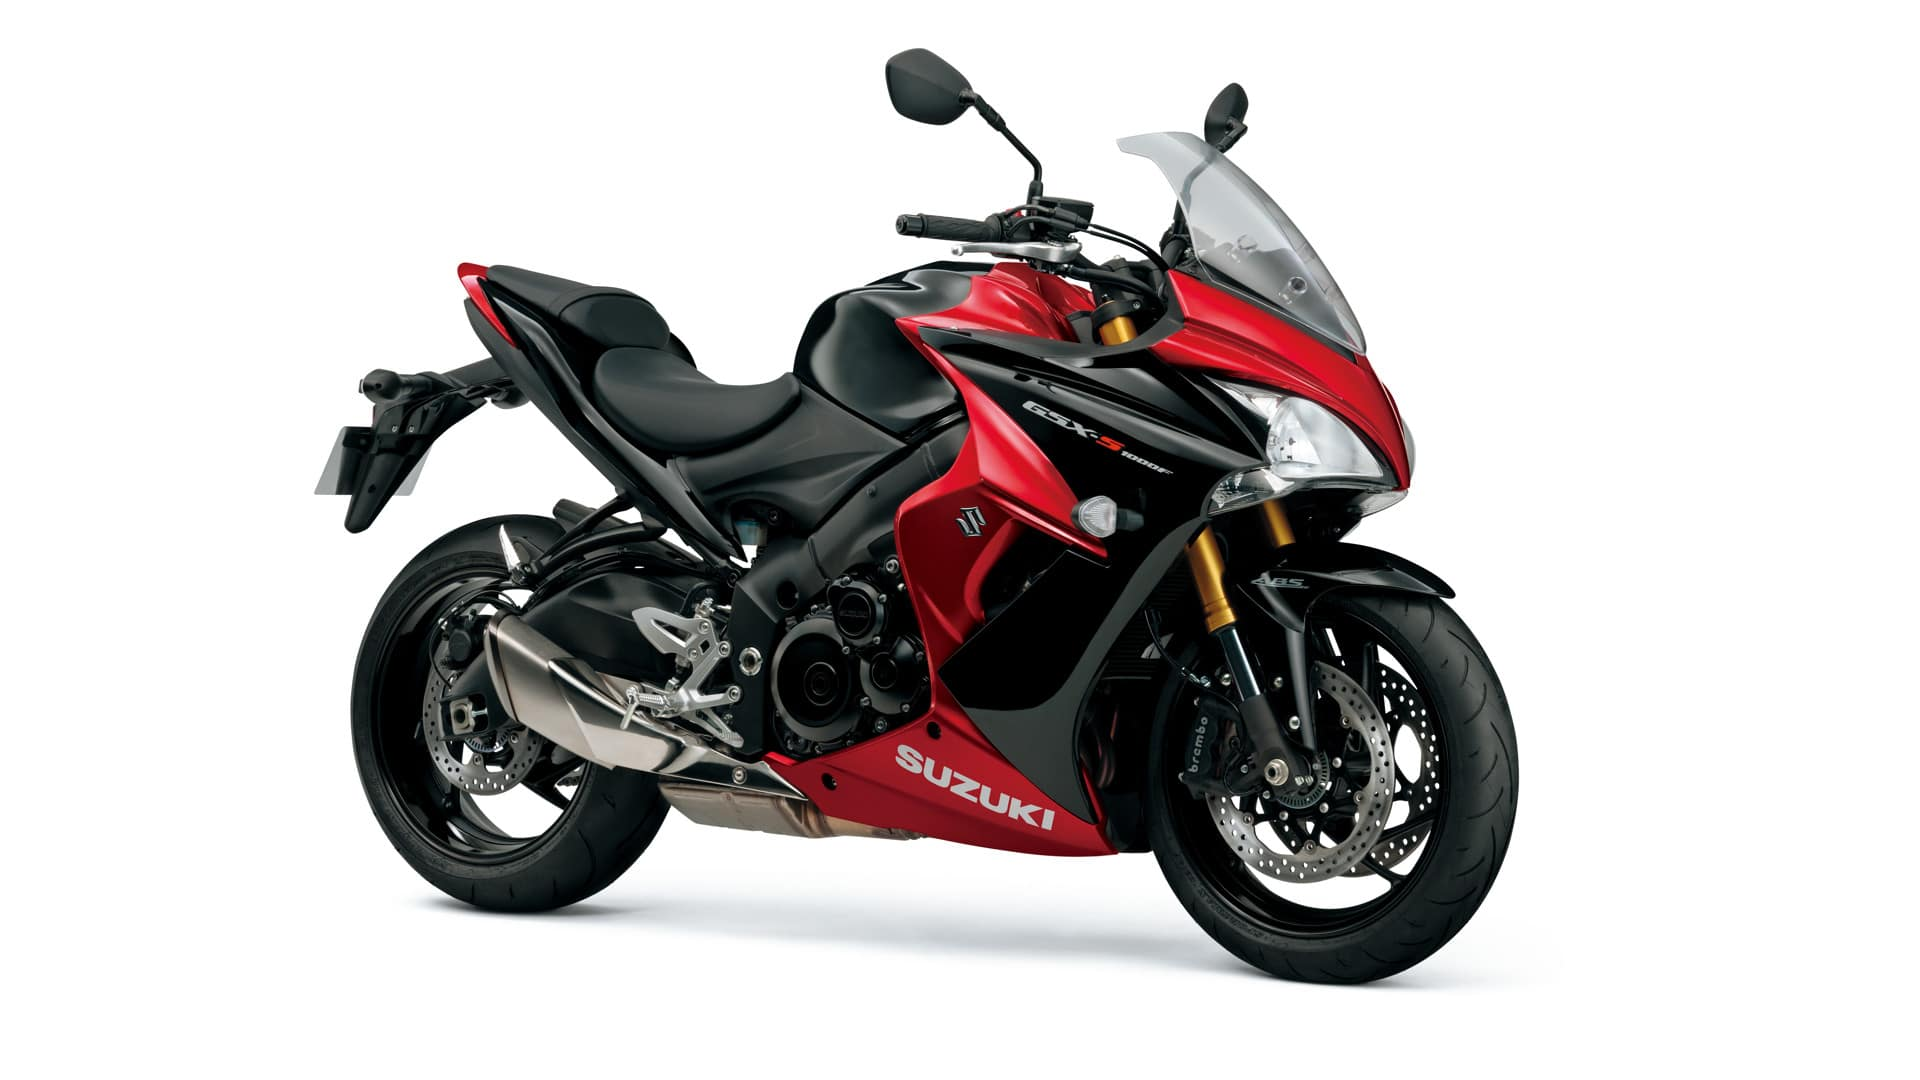 2016 Suzuki GSX-S1000F in the Candy Red/Sparkle Black colour scheme